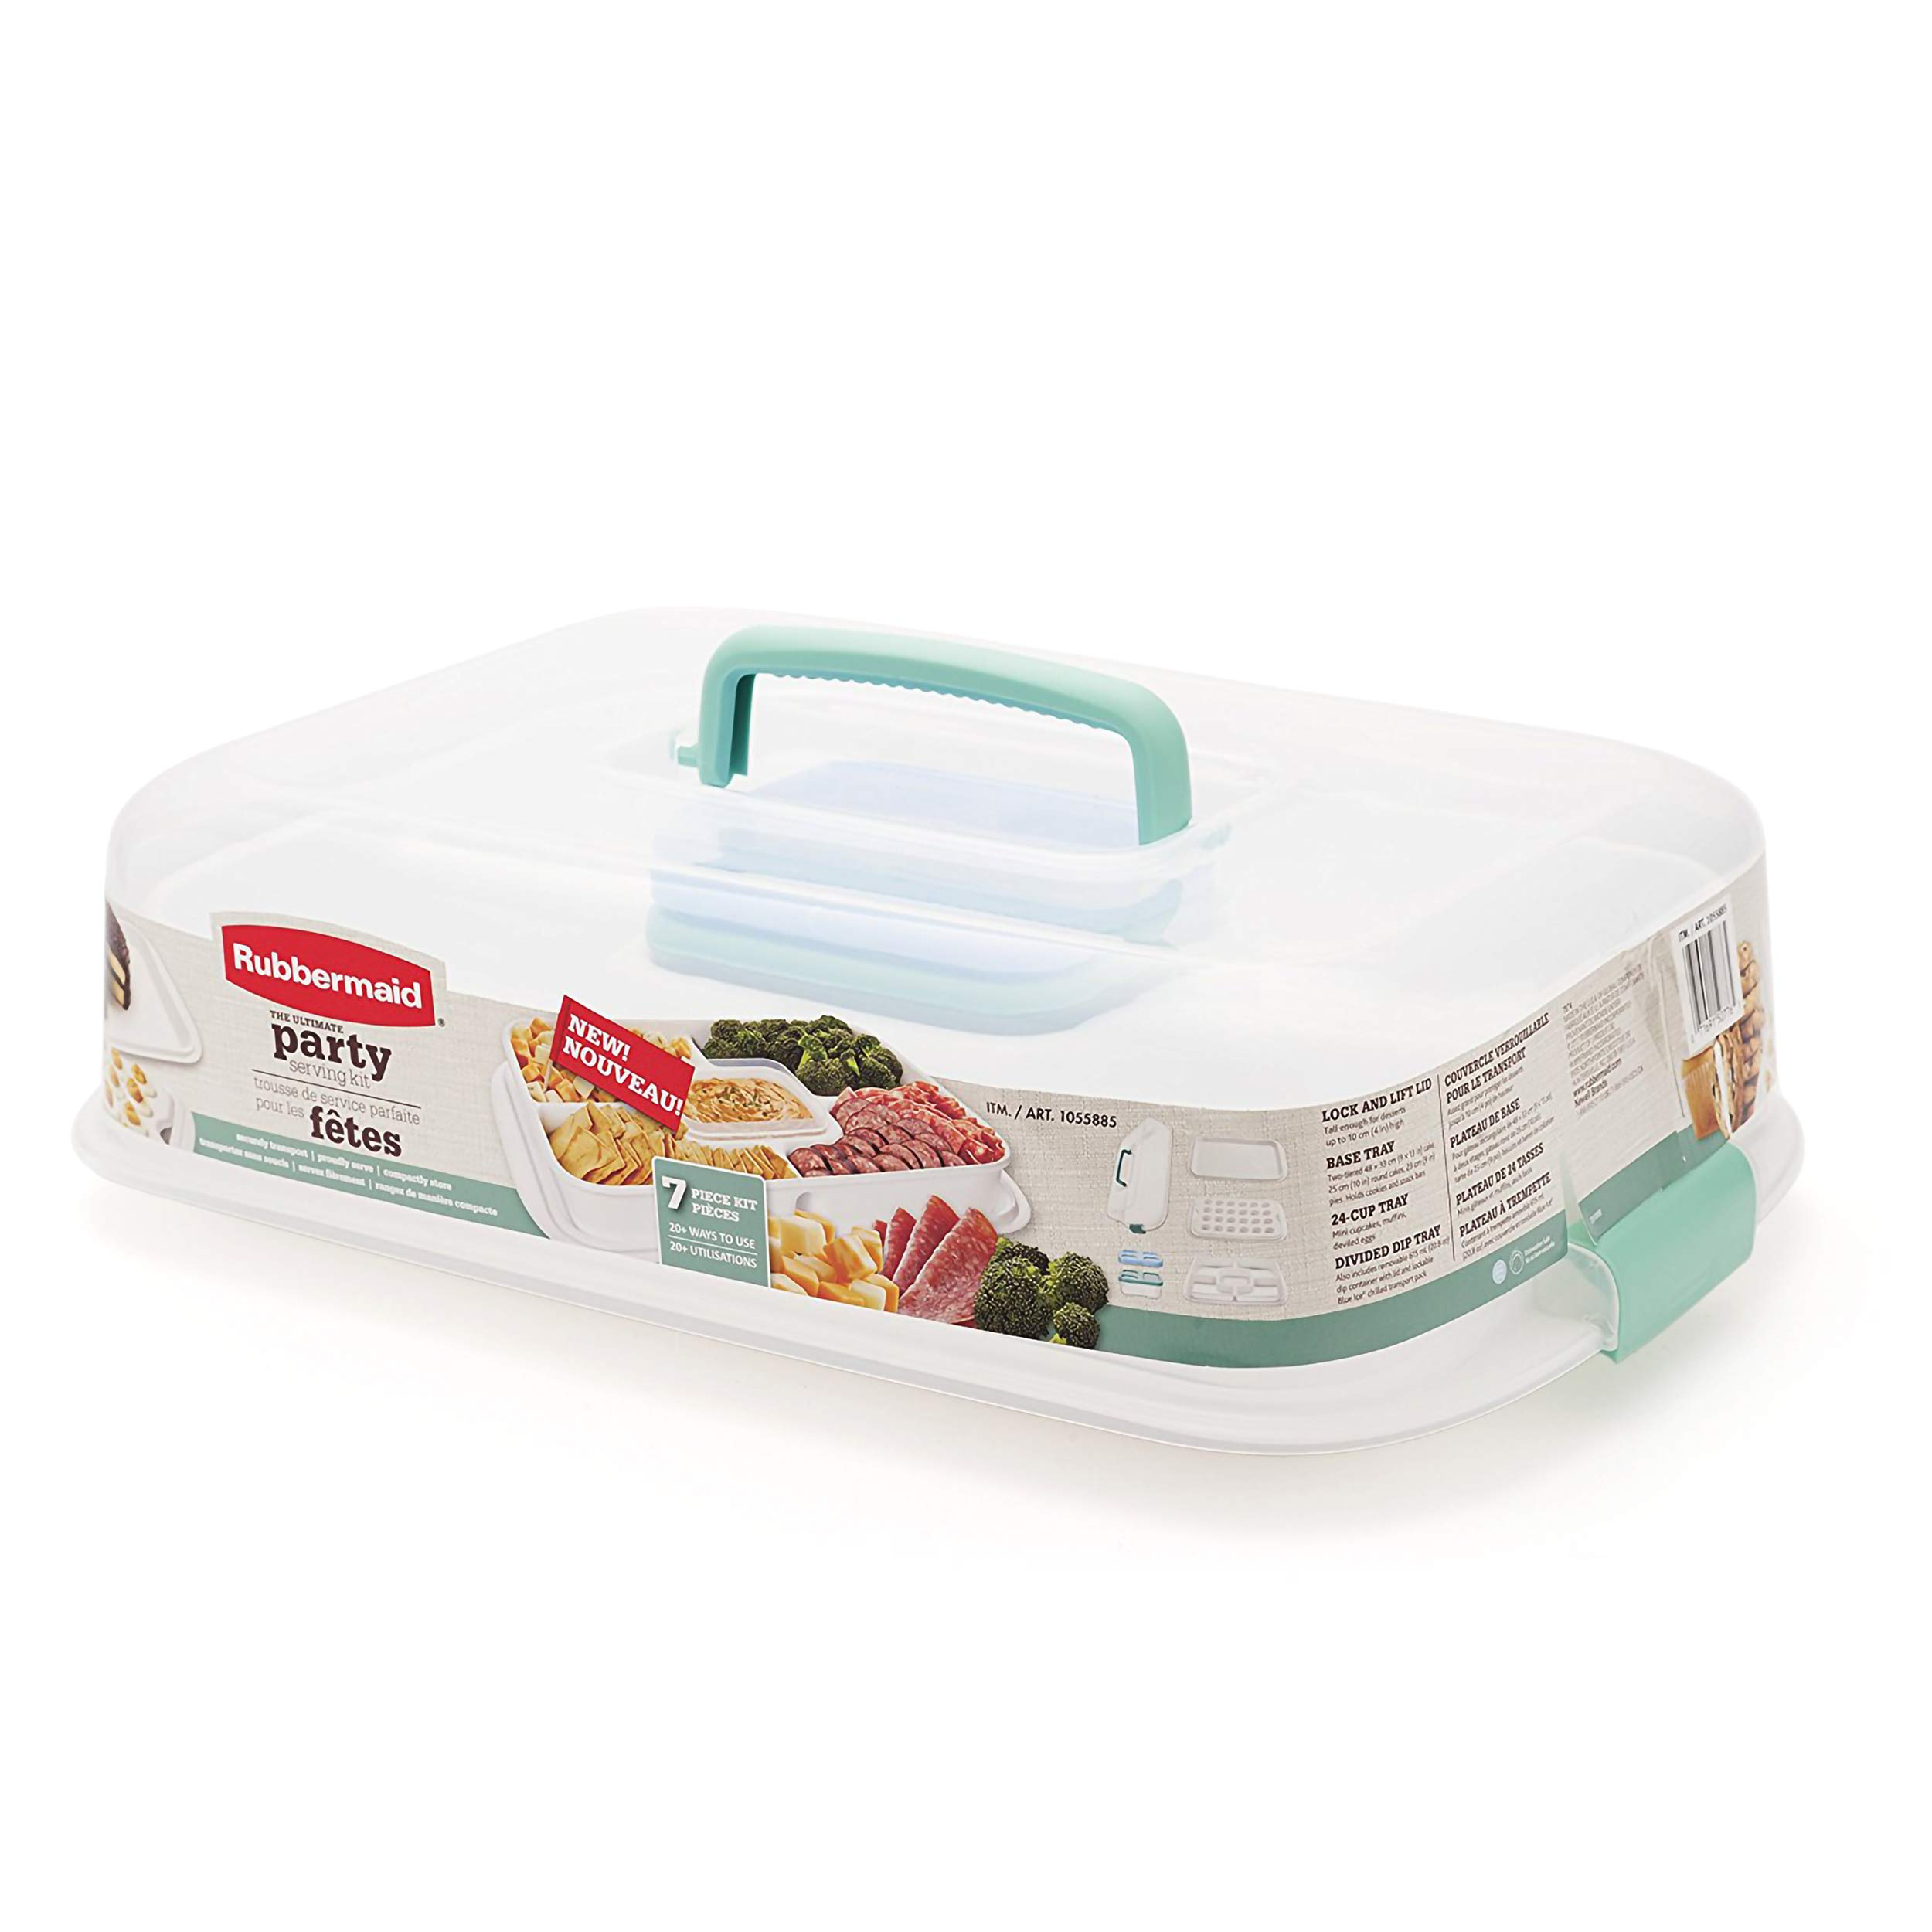 Rubbermaid Ultimate Party Serving Kit, 7-Piece Set, Turquoise